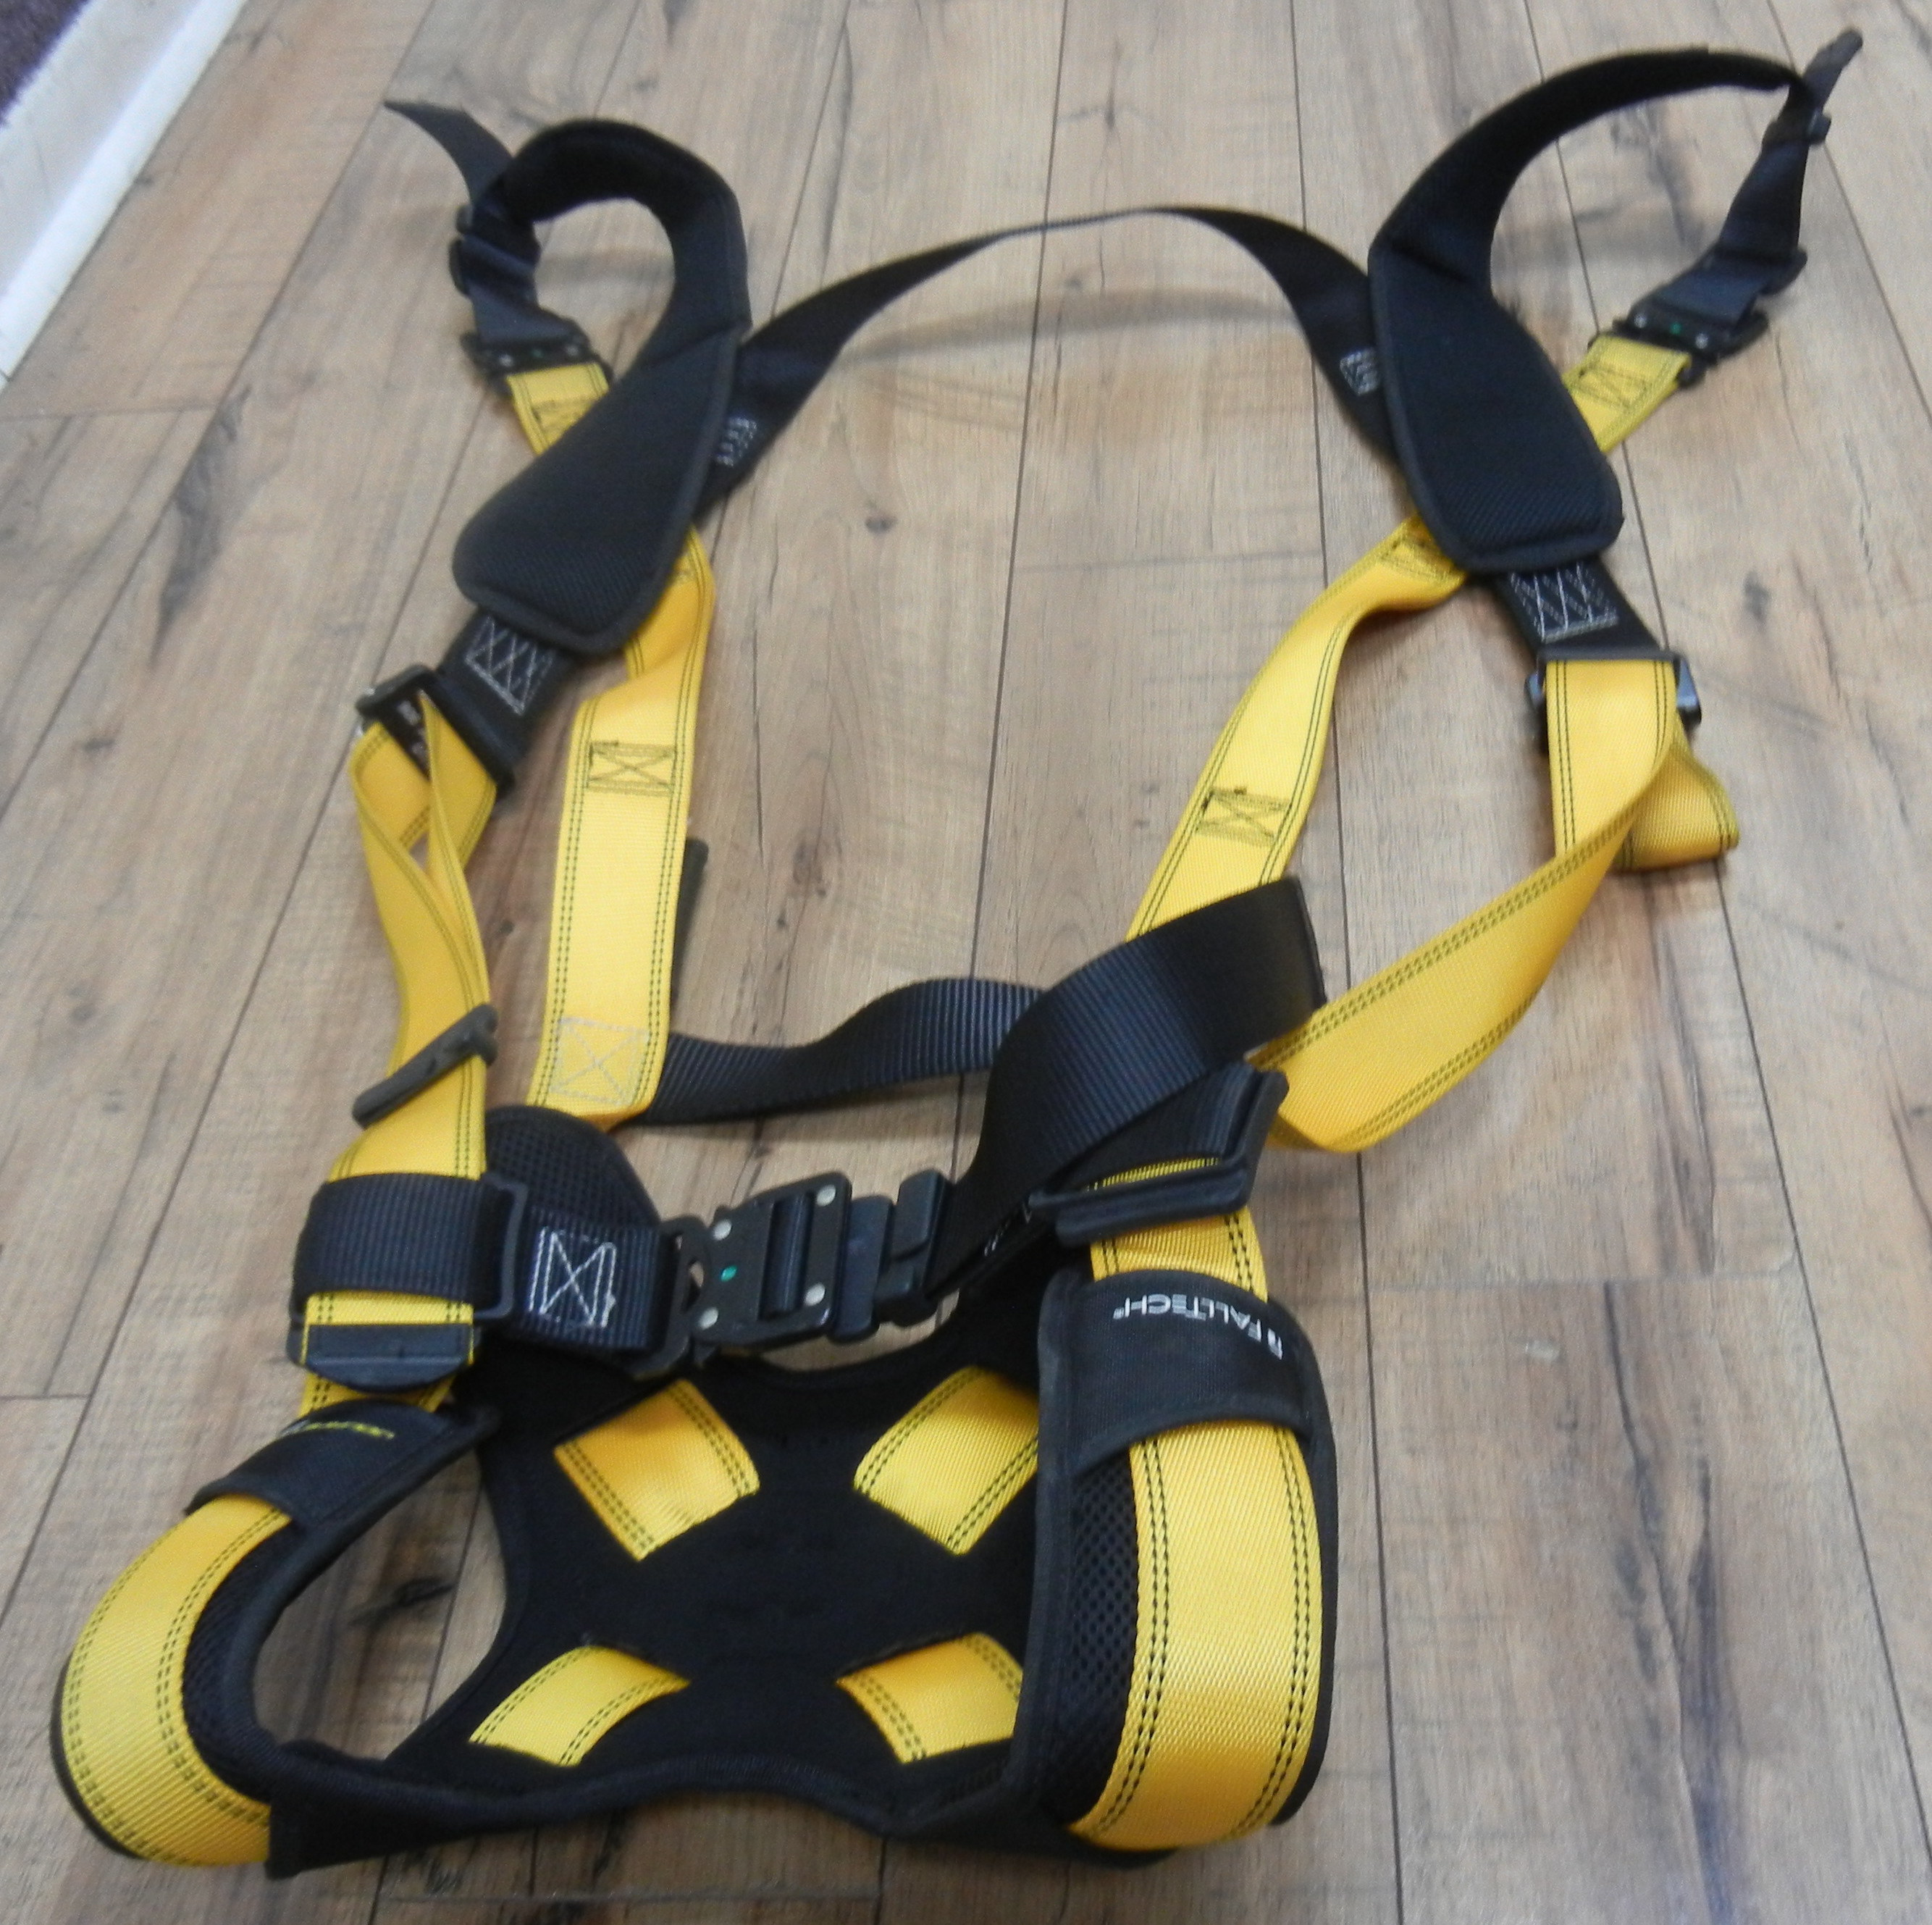 FALLTECH CLIMBING HARNESS - LIKE NEW